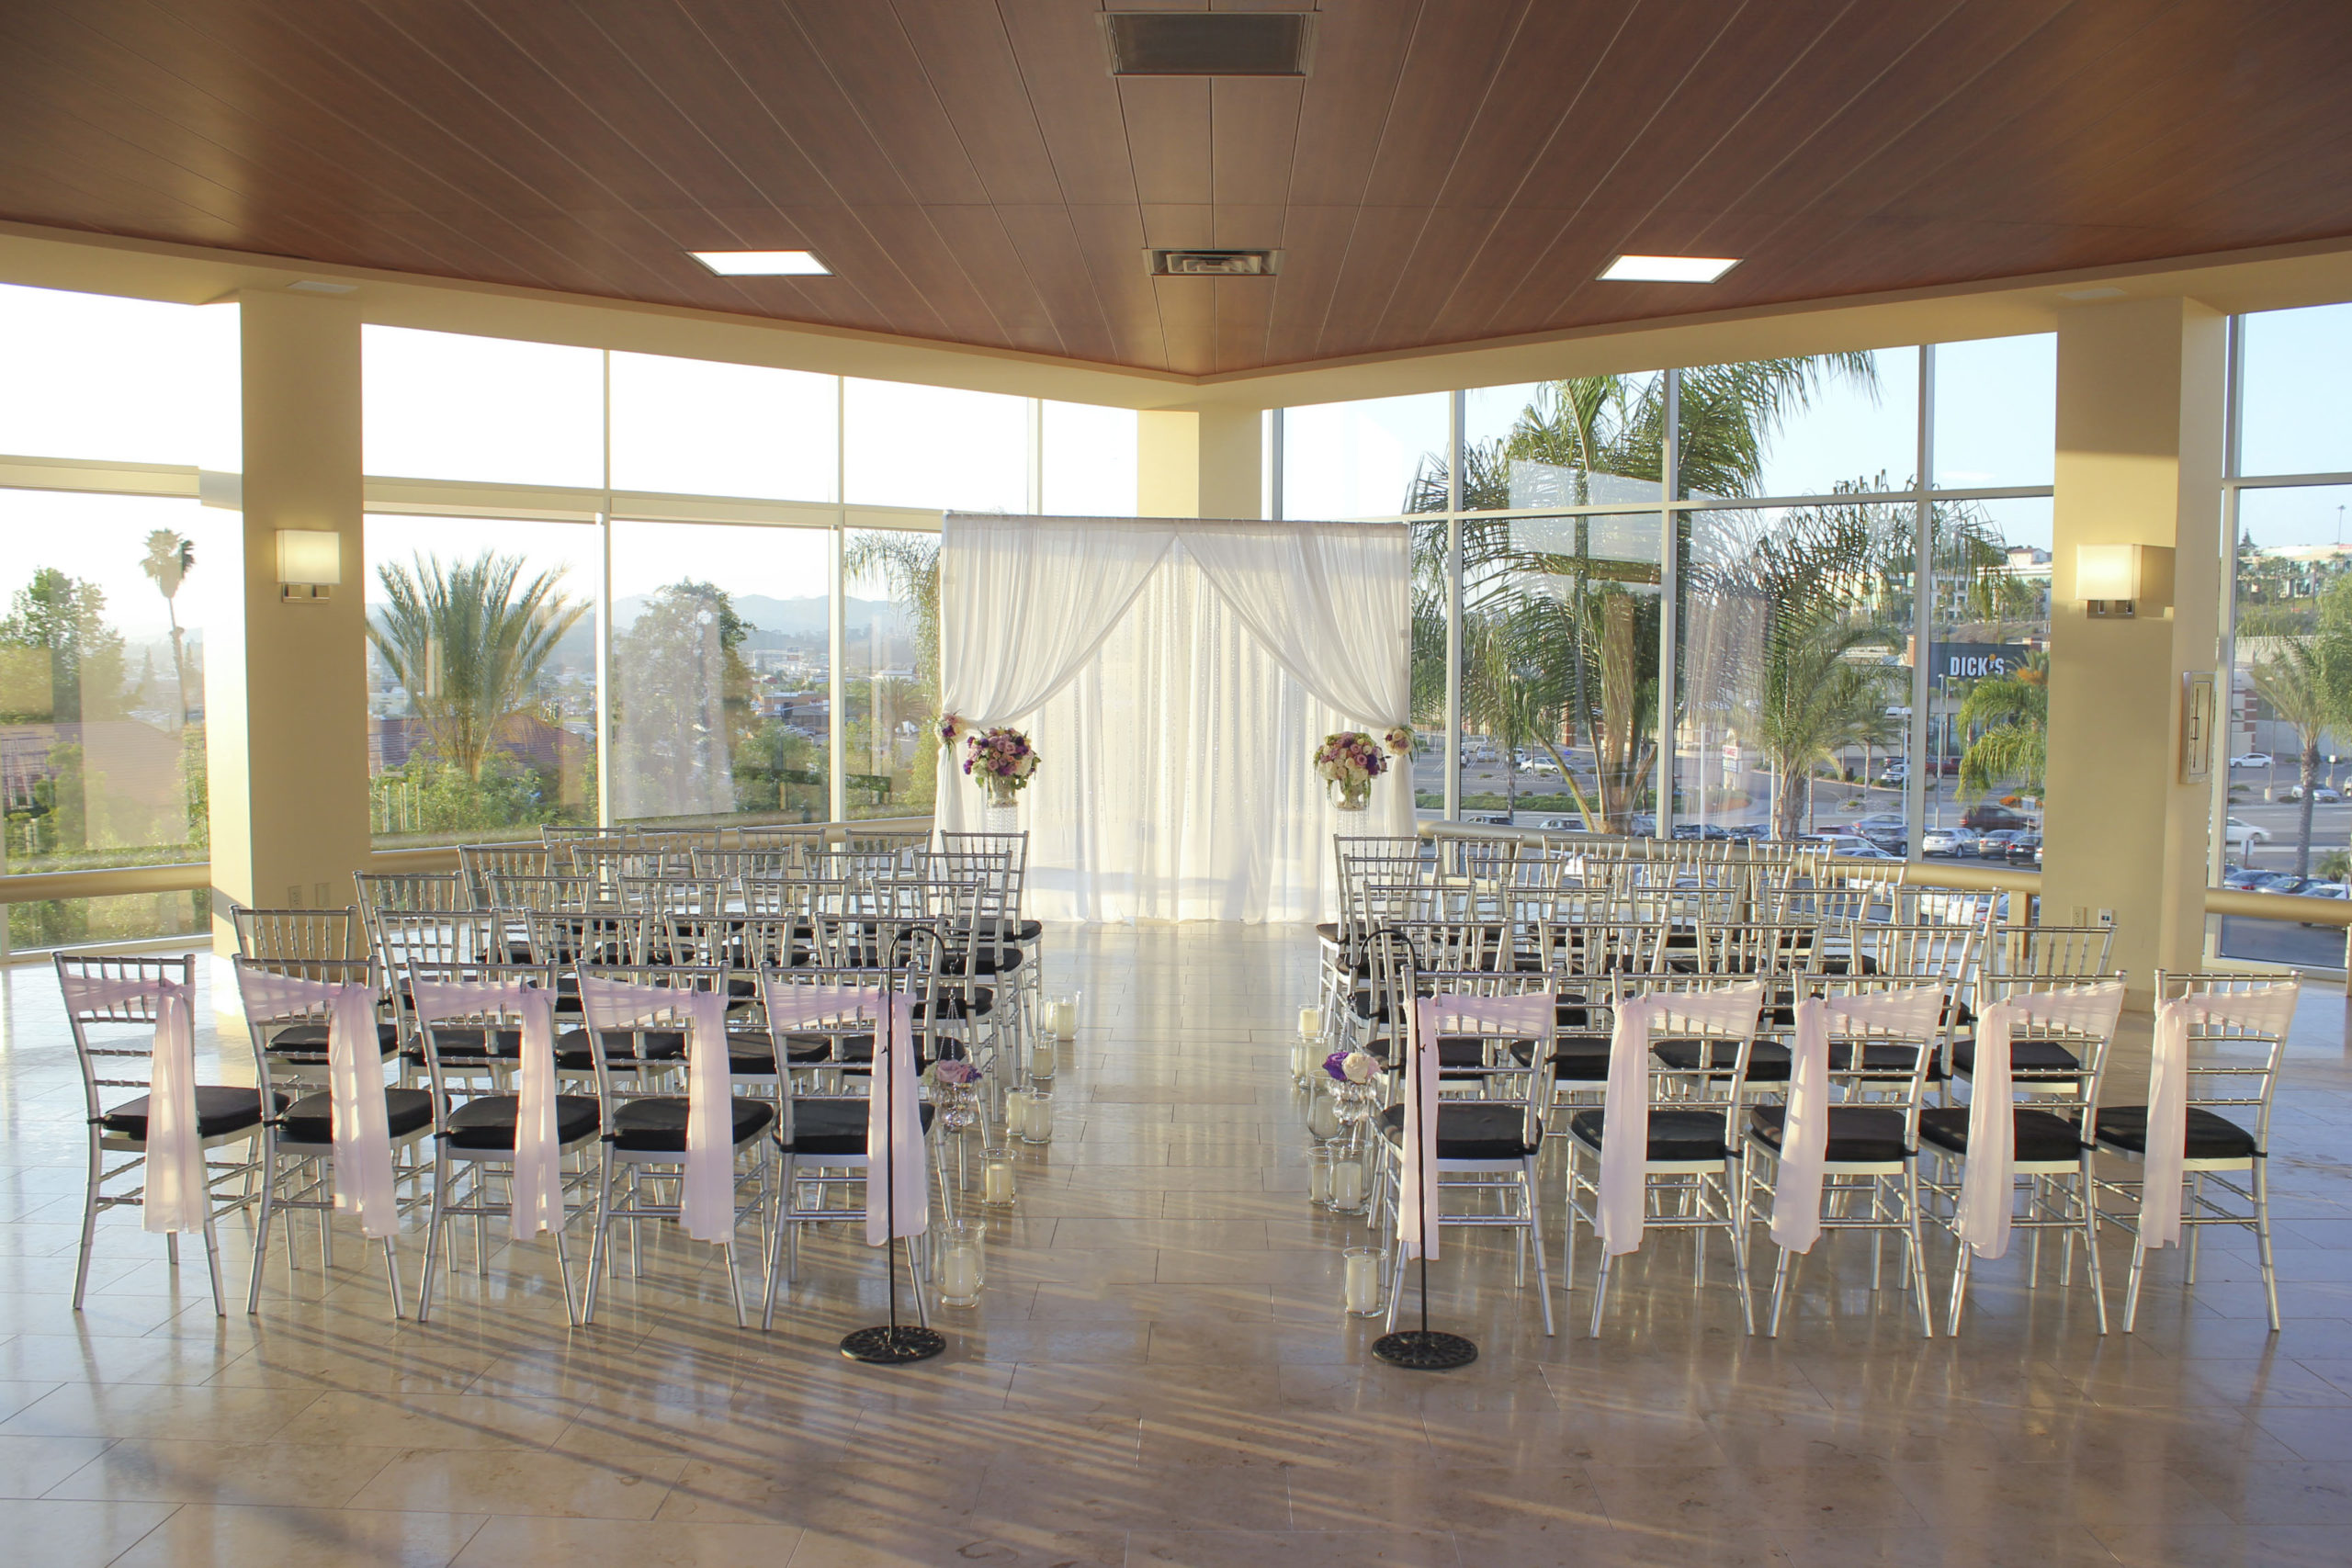 A micro wedding venue in San Diego County set up with about 36 chairs and a beautiful space for the couple to stand for their vows